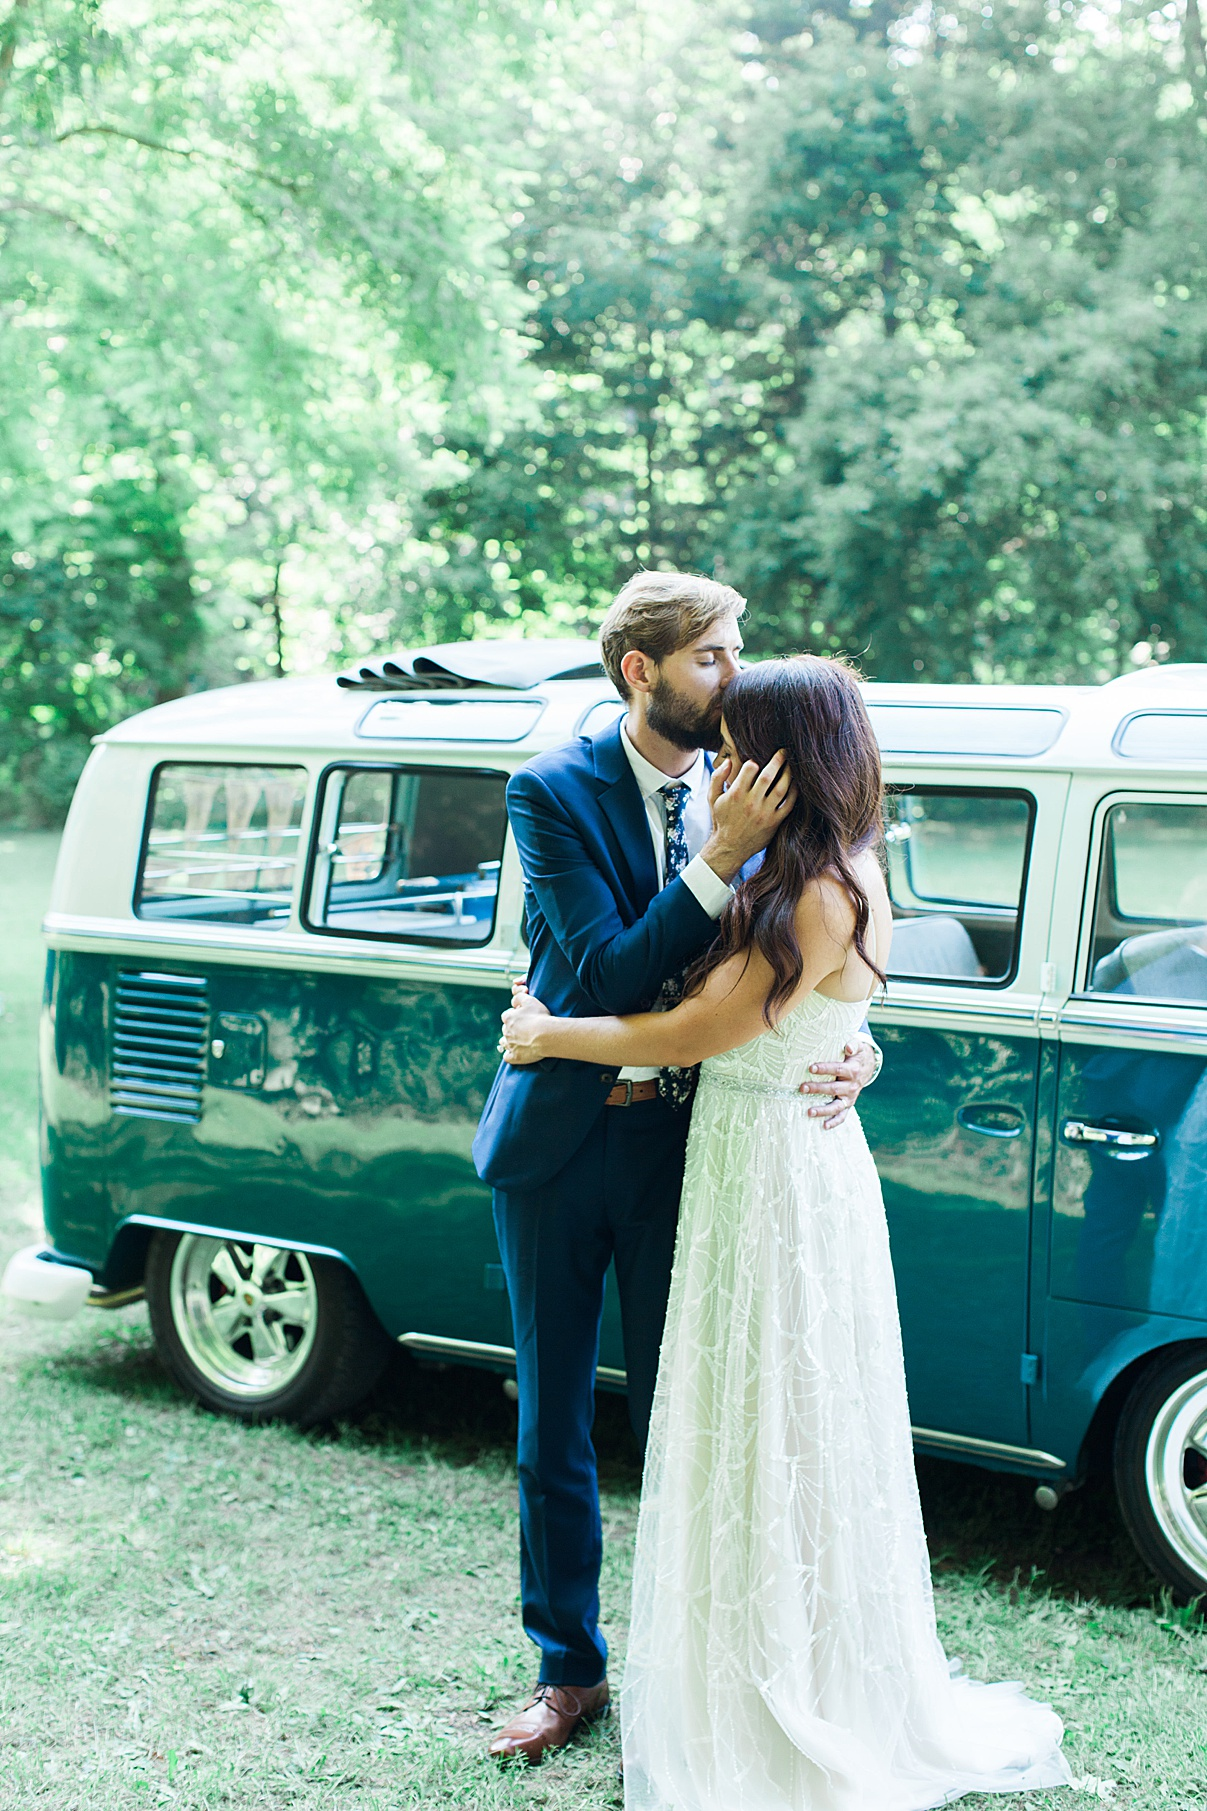 Groom kisses bride on forehead in front of vintage bus| Balls Falls, Ontario Wedding| Ontario Wedding Photographer| Toronto Wedding Photographer| 3Photography| 3photography.ca